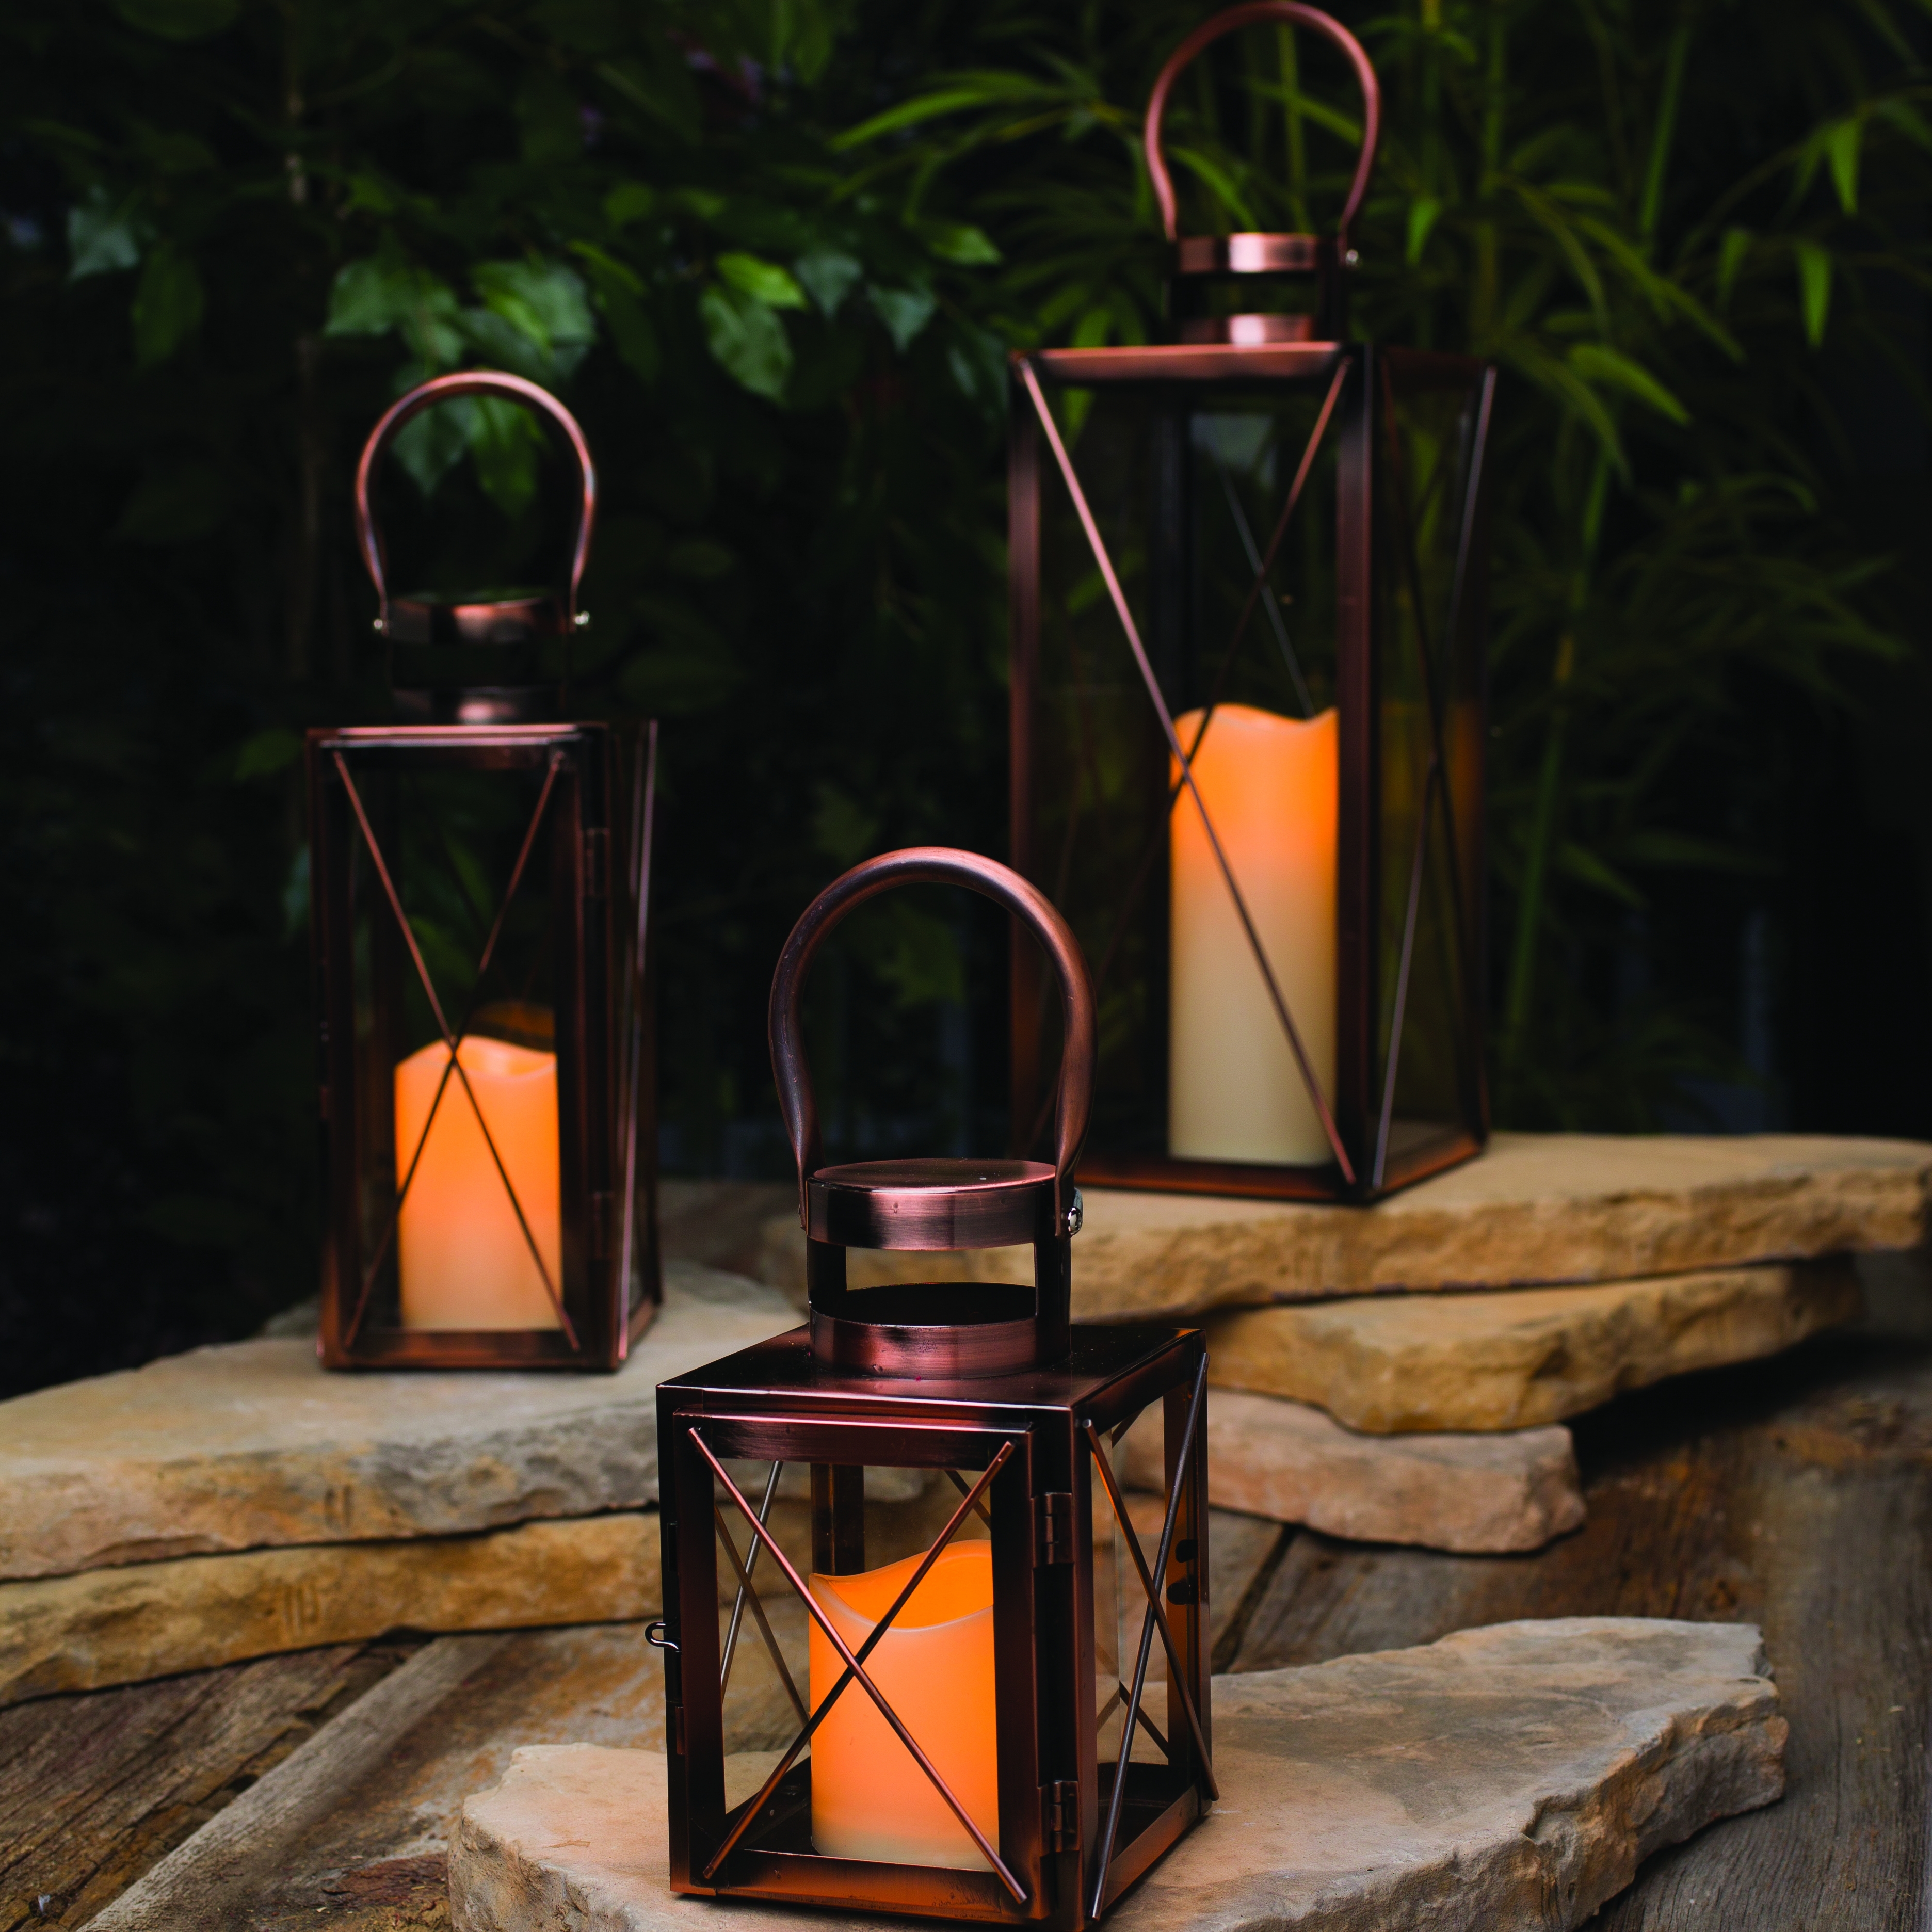 Outdoor Lanterns And Candles Within Fashionable Lighting: Brighten Up Your Space With Stunning Candle Lanterns (View 16 of 20)